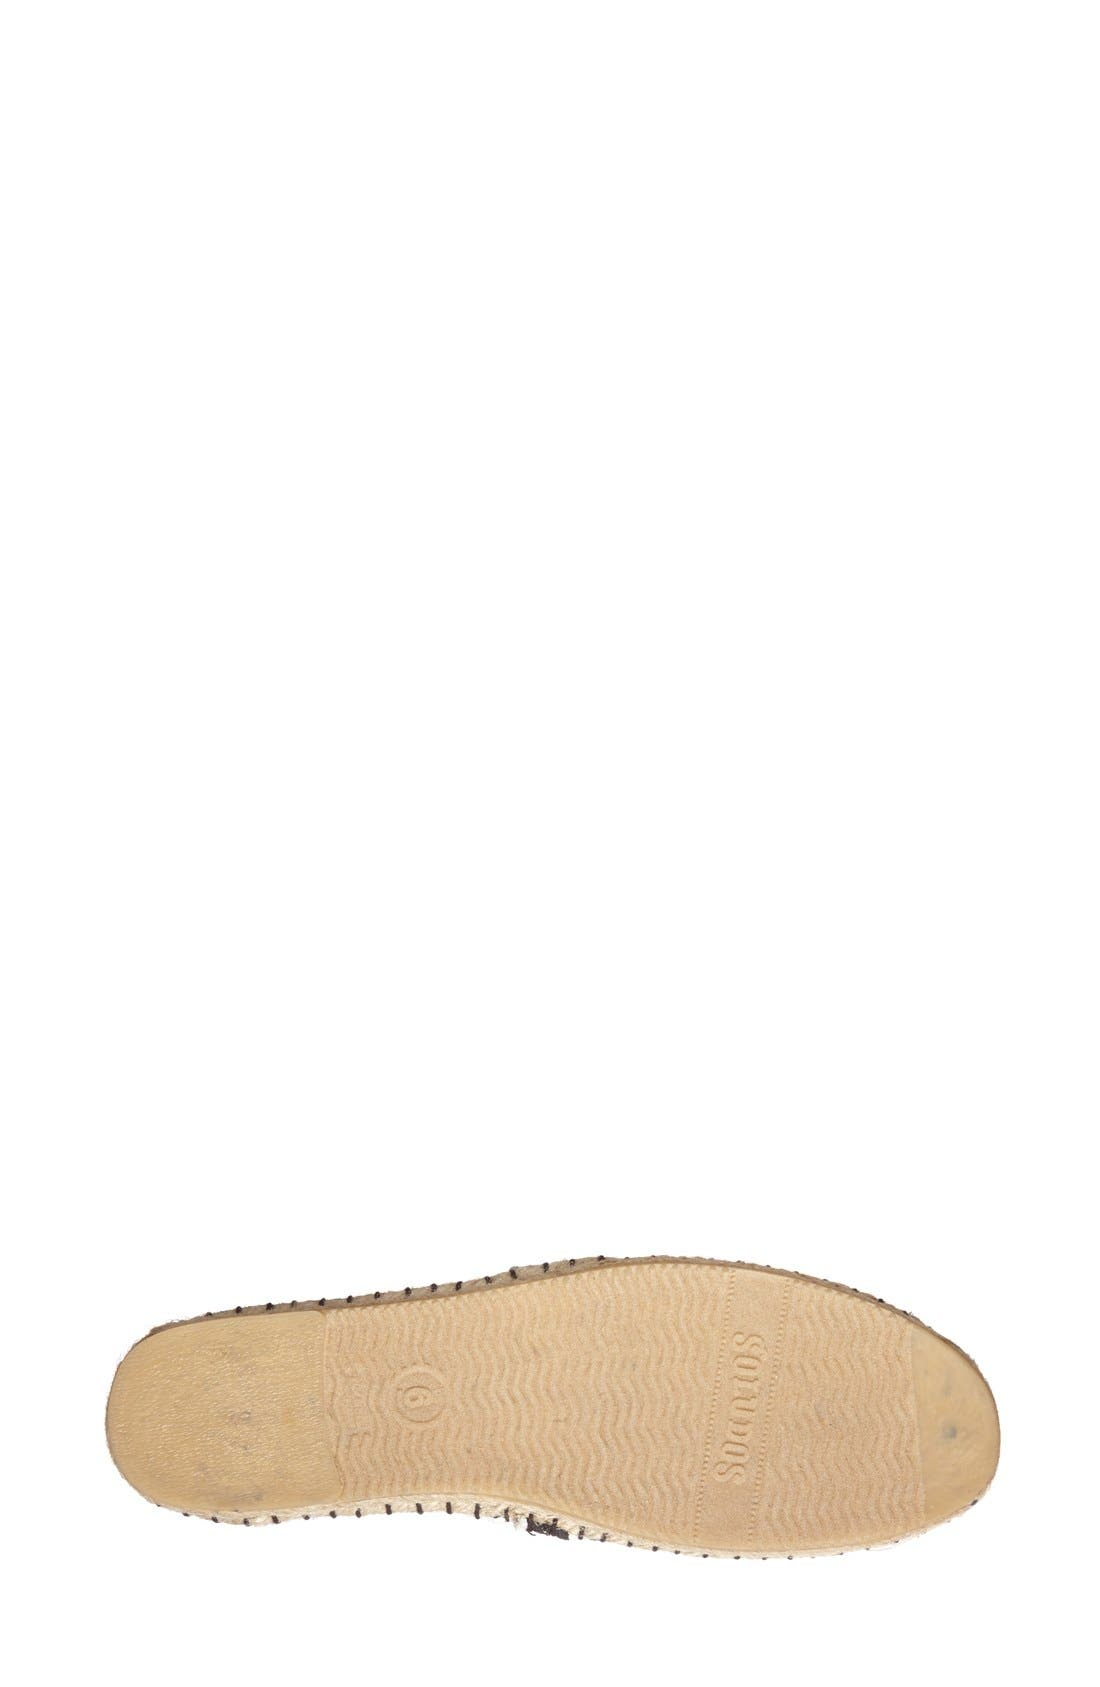 Alternate Image 4  - Soludos 'Classic' Espadrille Slip-On (Women)